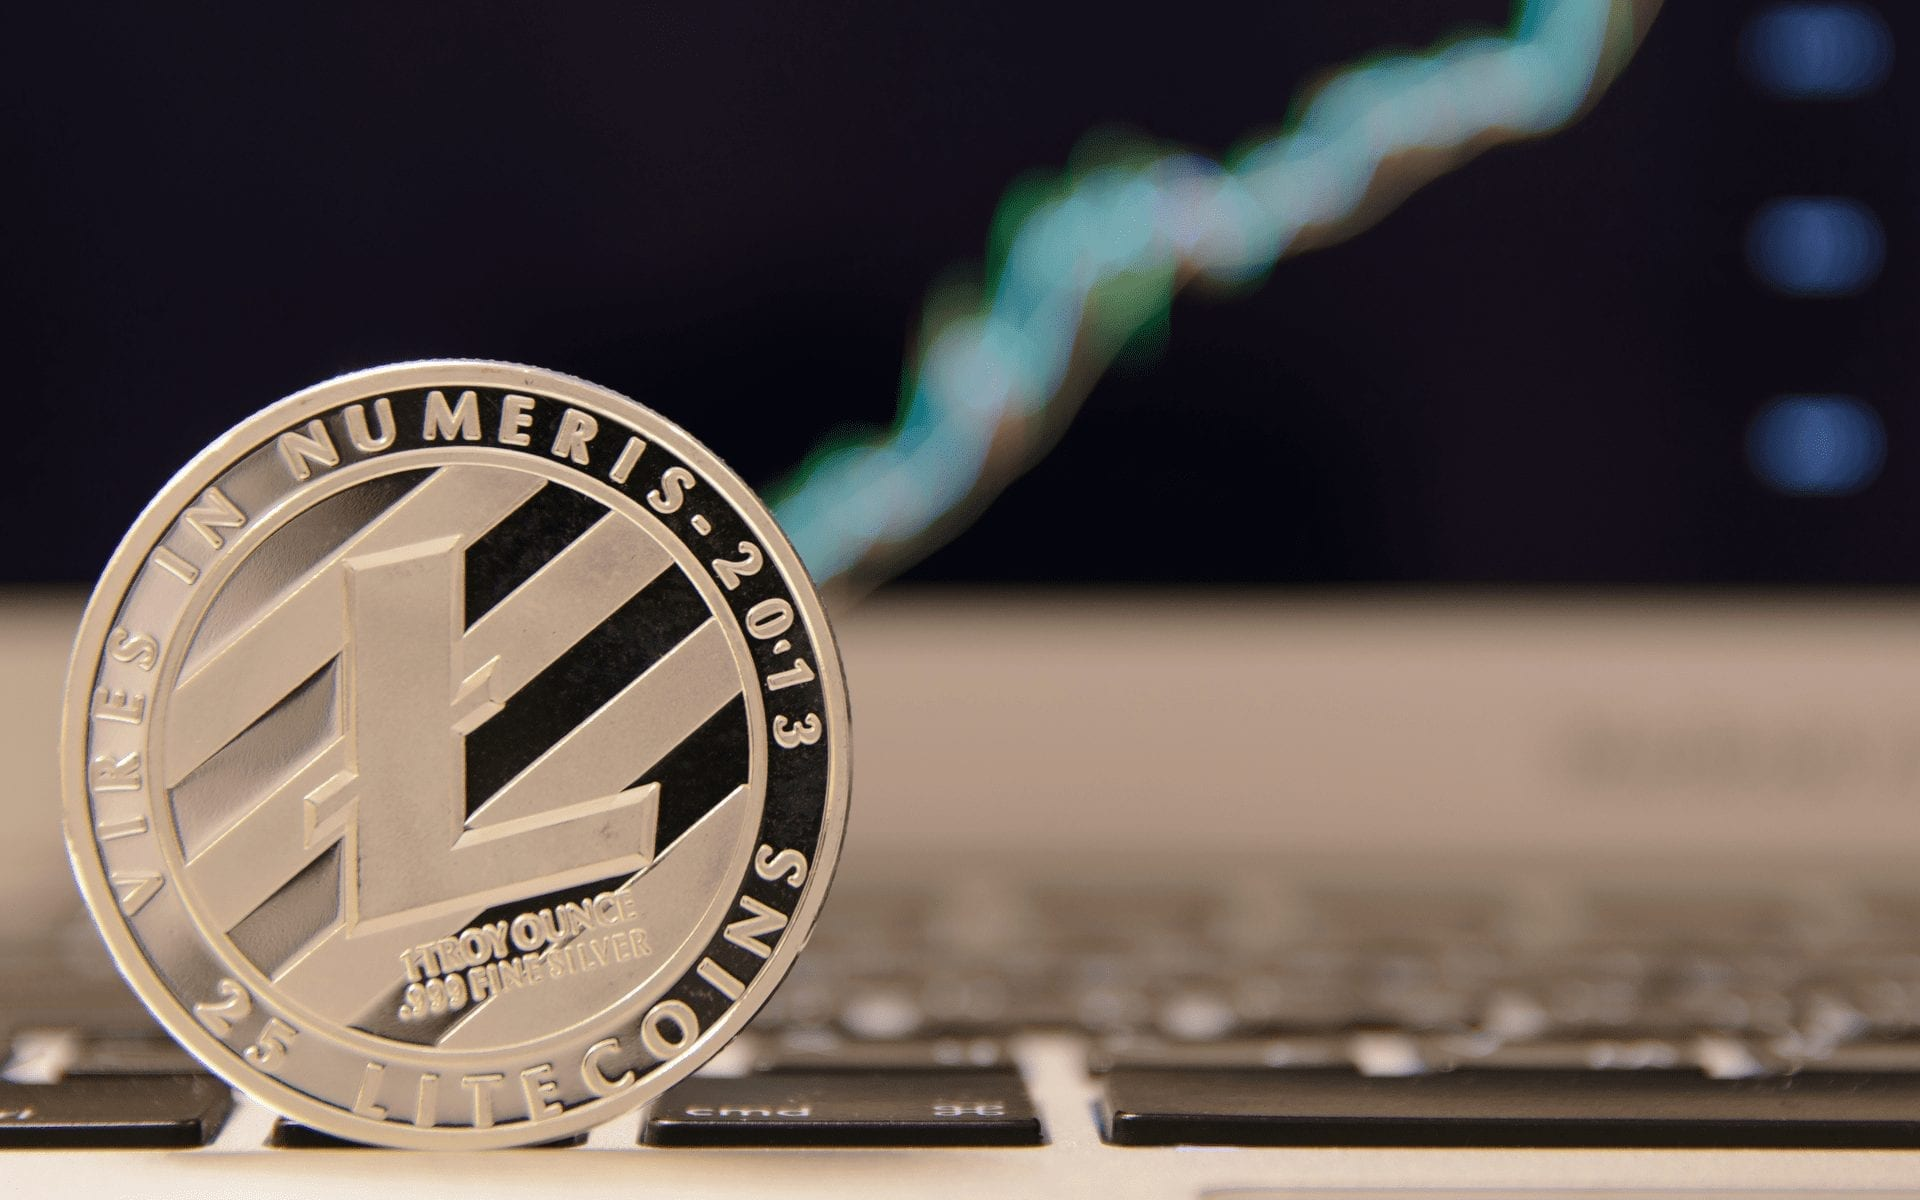 shutterstock 770572831 - Litecoin Adoption: New ATM Company Adds Support For LTC - Buy LTC With Cash, Monero, BTC, And ETH